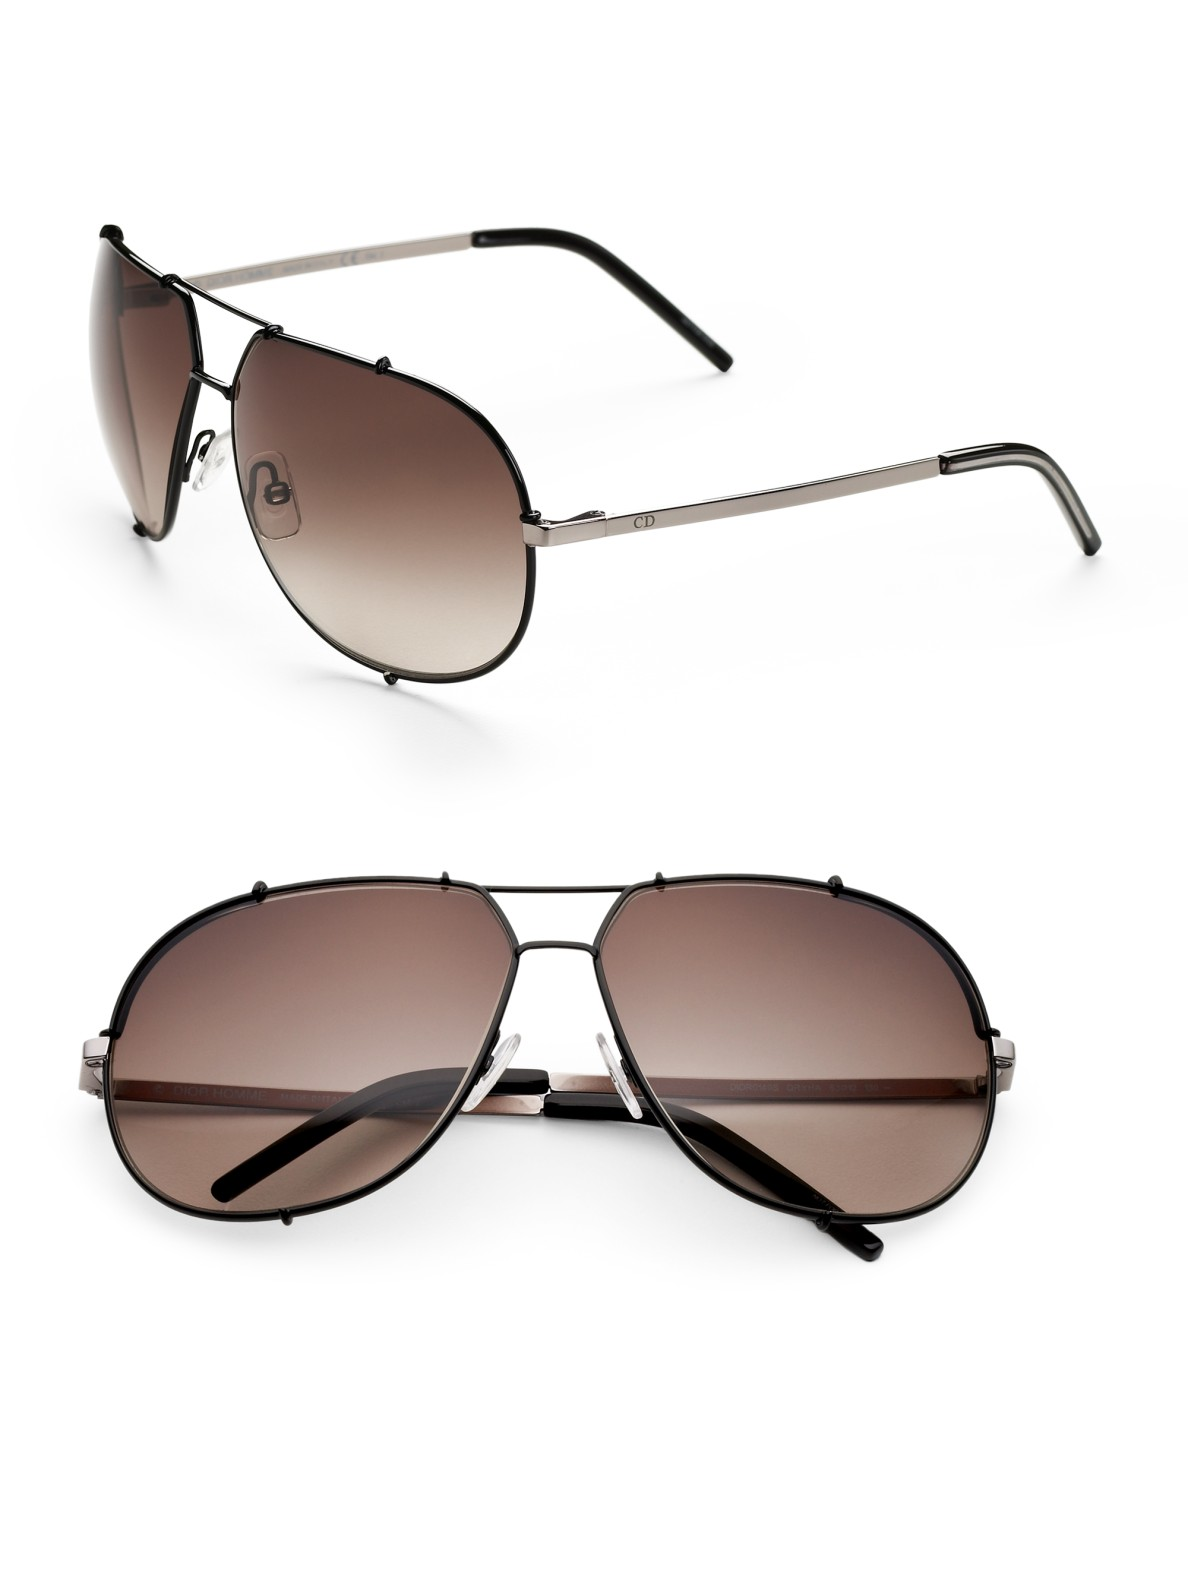 312562bf17215 Lyst - Dior Homme Metal Aviator Sunglasses in Brown for Men